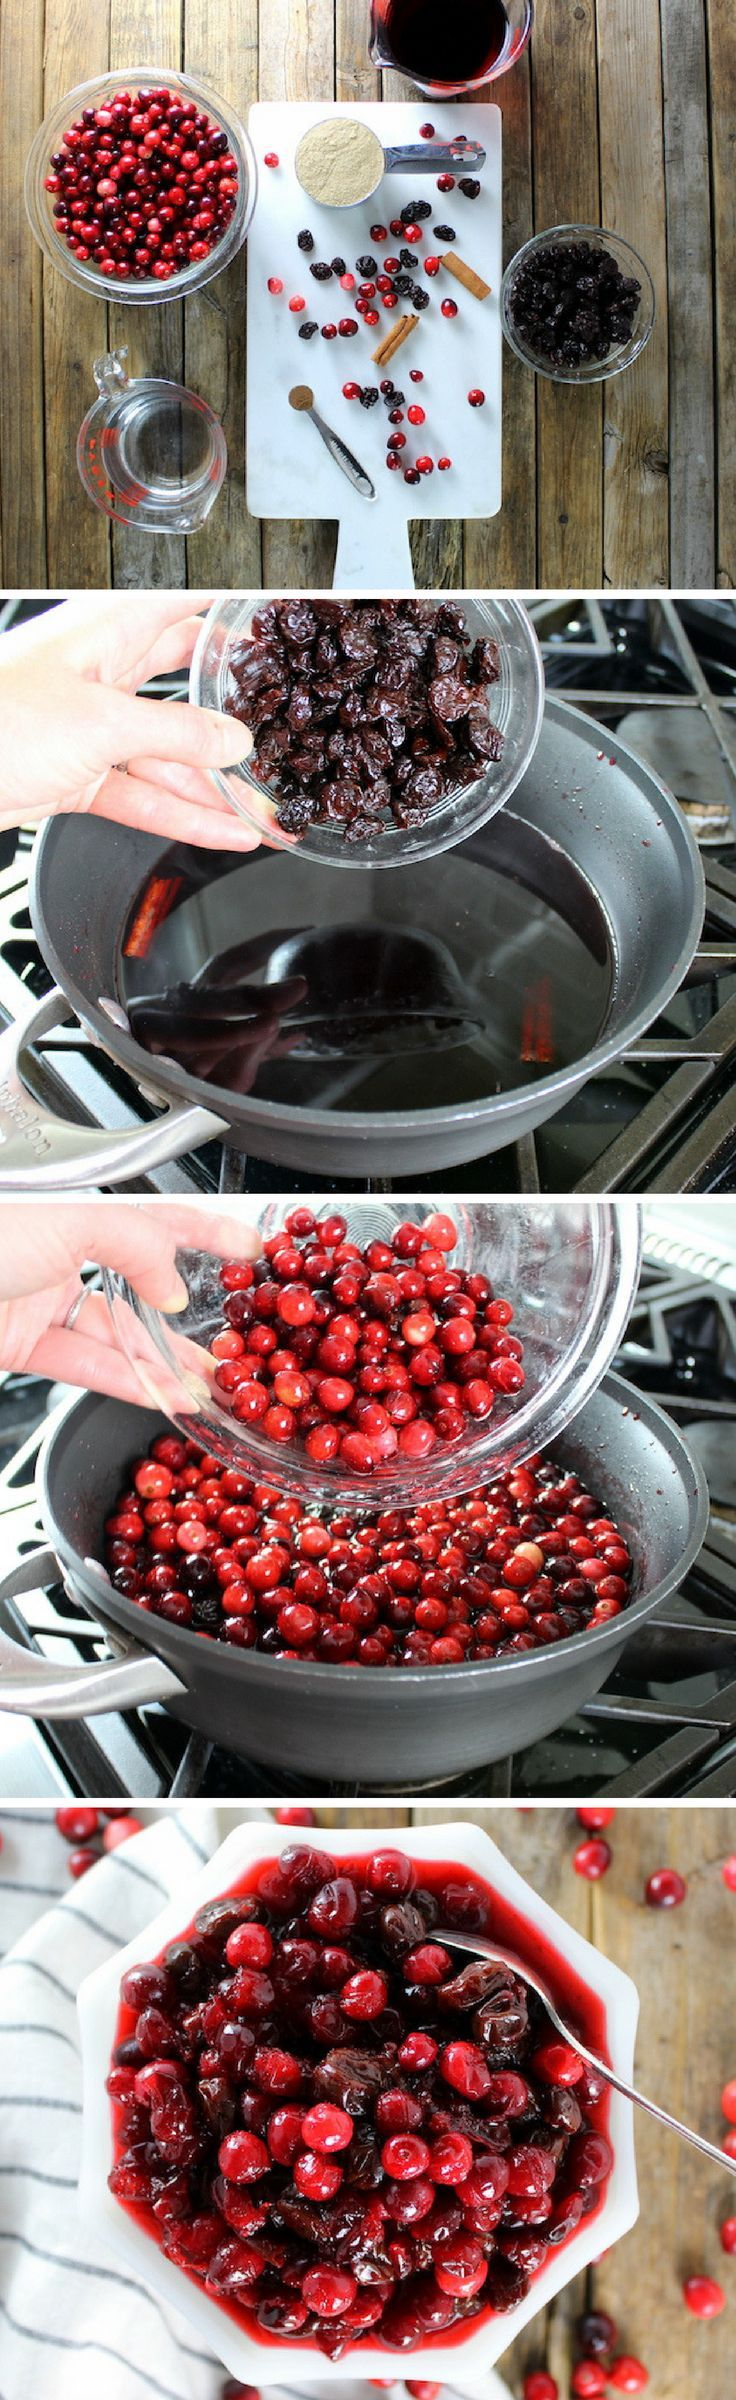 Perfect Cranberry and Dried Cherry Sauce recipe for Thanksgiving & Christmas!  http://tasteandsee.com